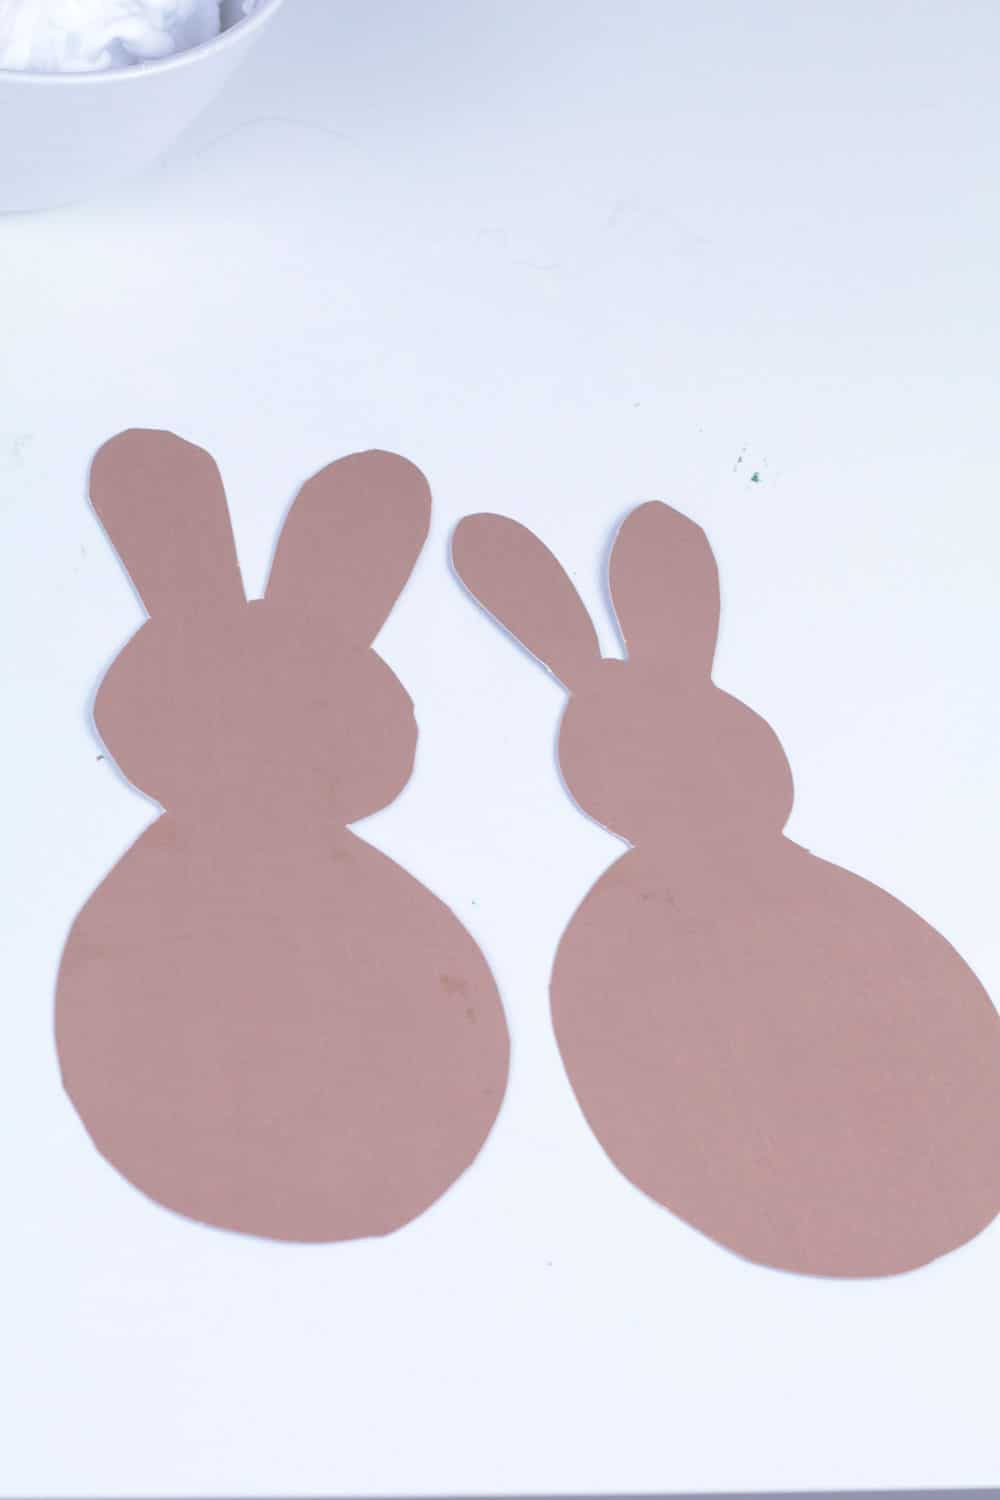 Calling all slime fans! This fluffy bunny tail slime recipe is the perfect slime recipe for Easter! The Easter slime is super fluffy and looks just like a bunny tail! Use the printable bunny template to make this slime activity even easier!